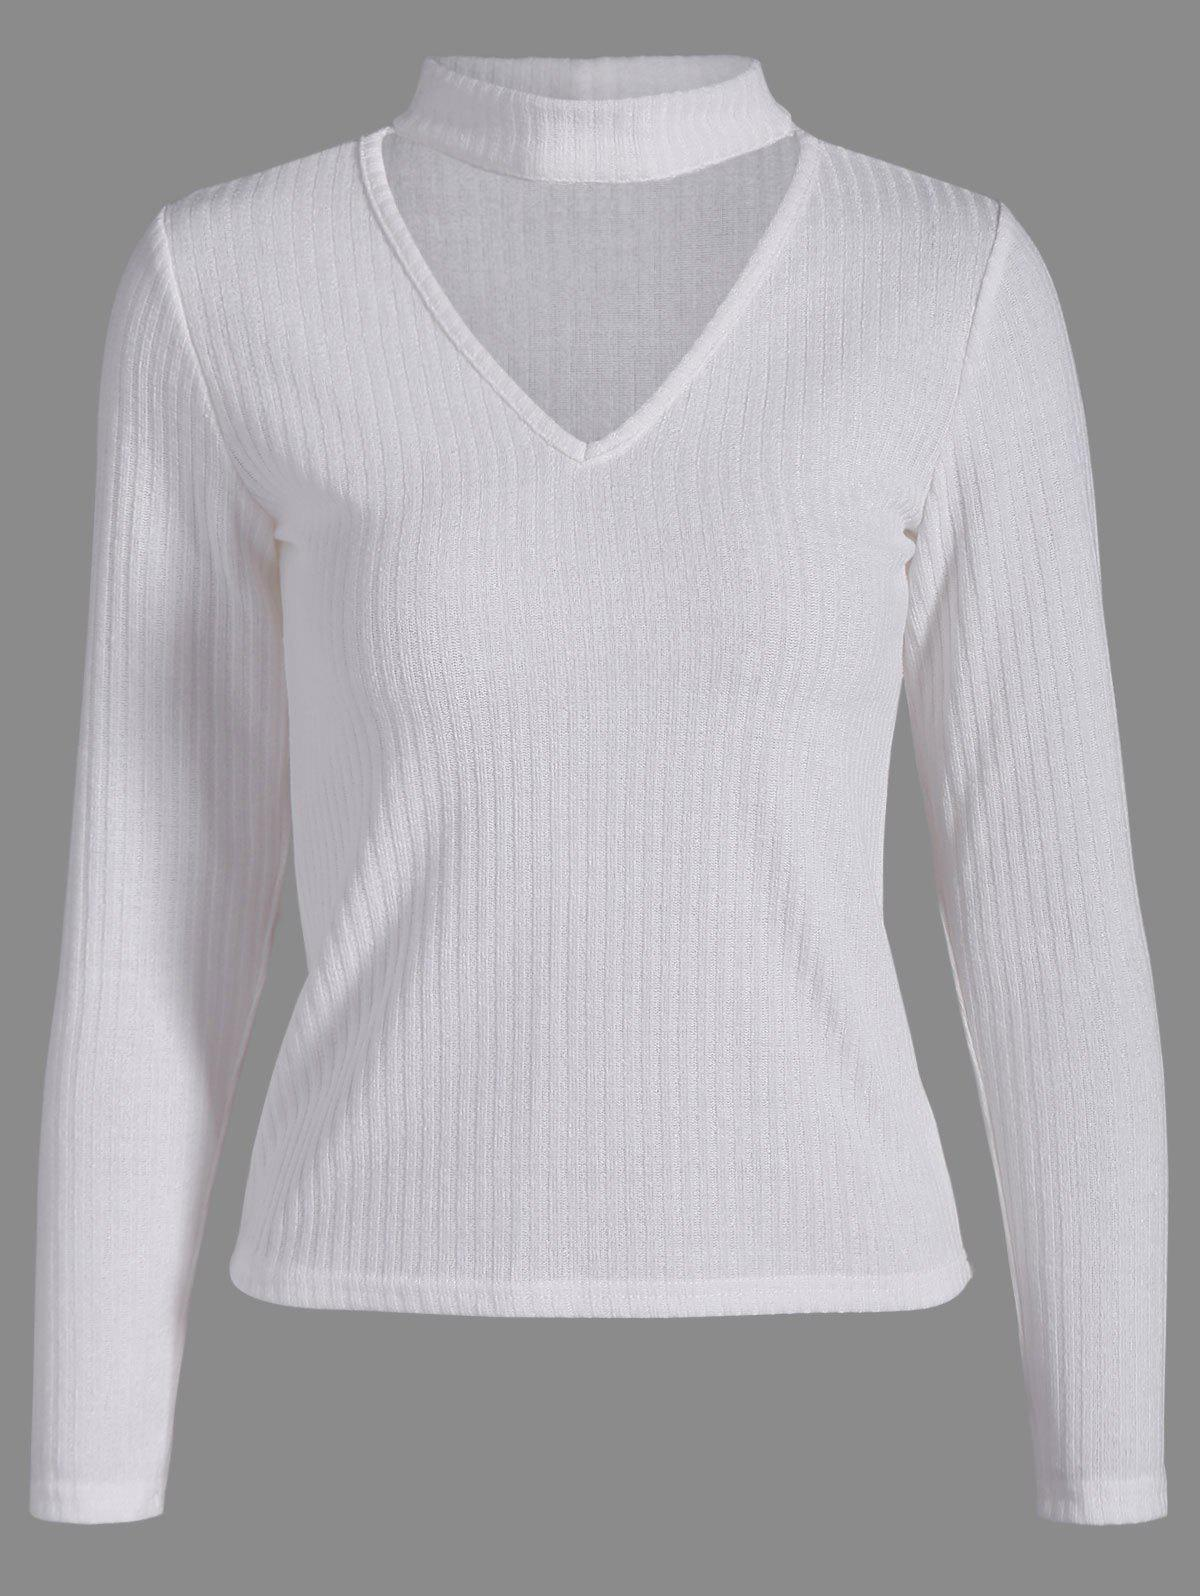 Ribbed Front Cut Out Knitwear - WHITE XL